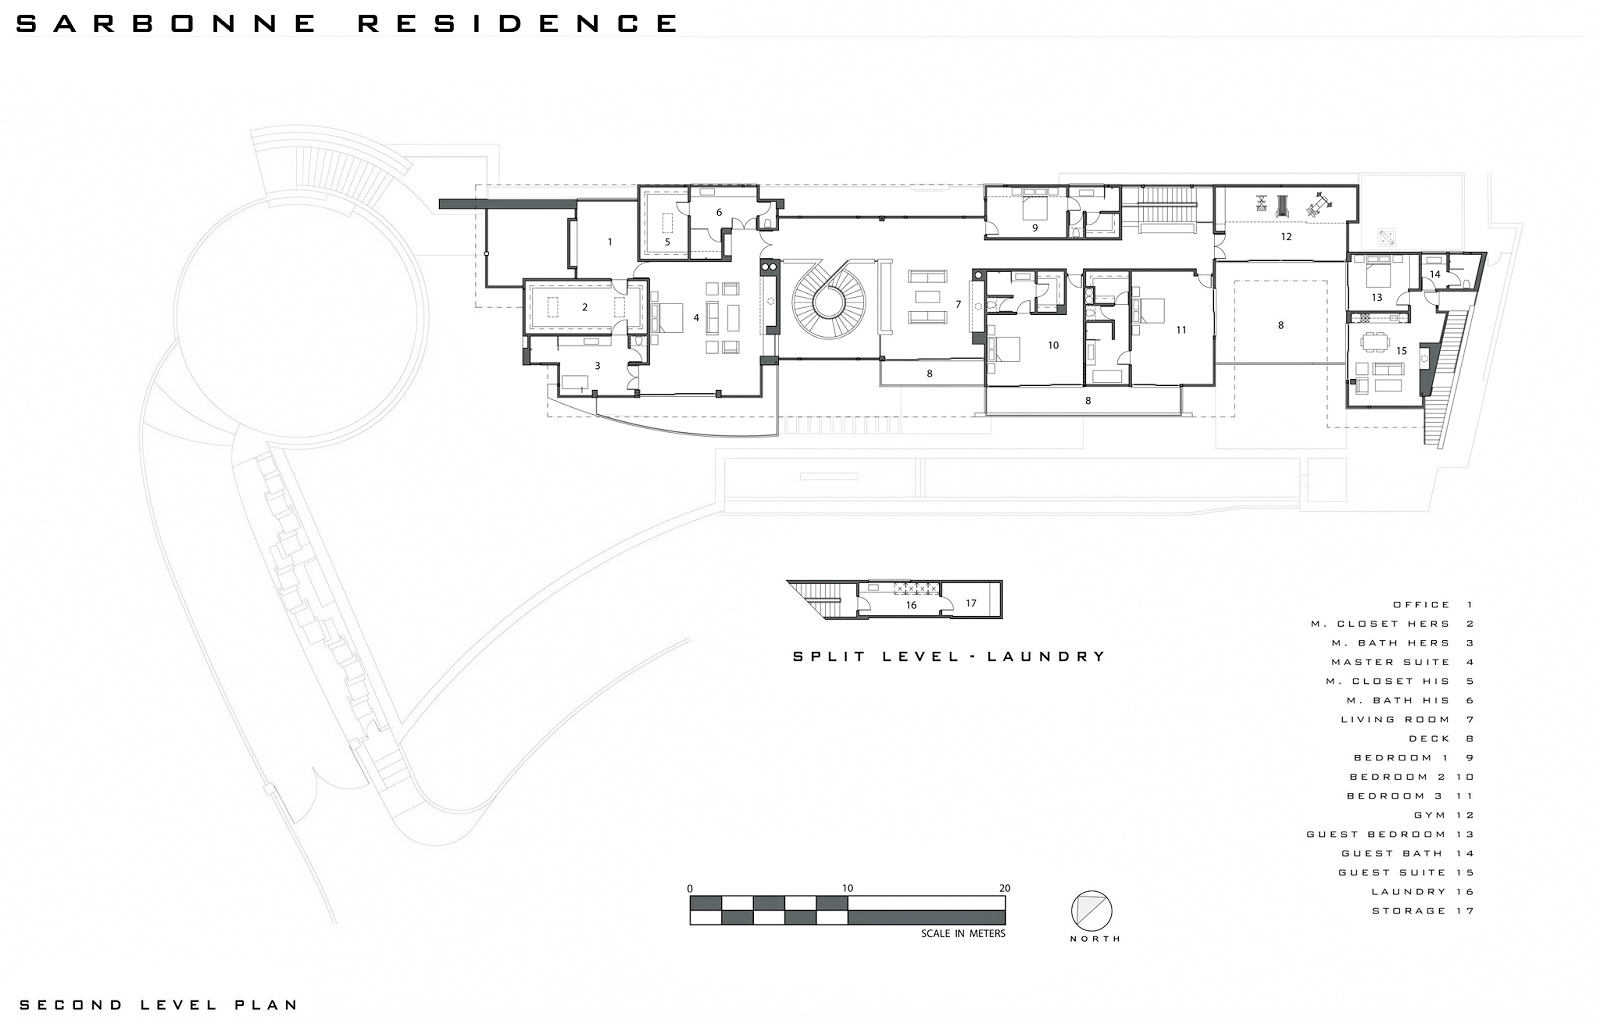 Second Level Floor Plan – Bel Air Residence – 755 Sarbonne Rd, Los Angeles, CA, USA